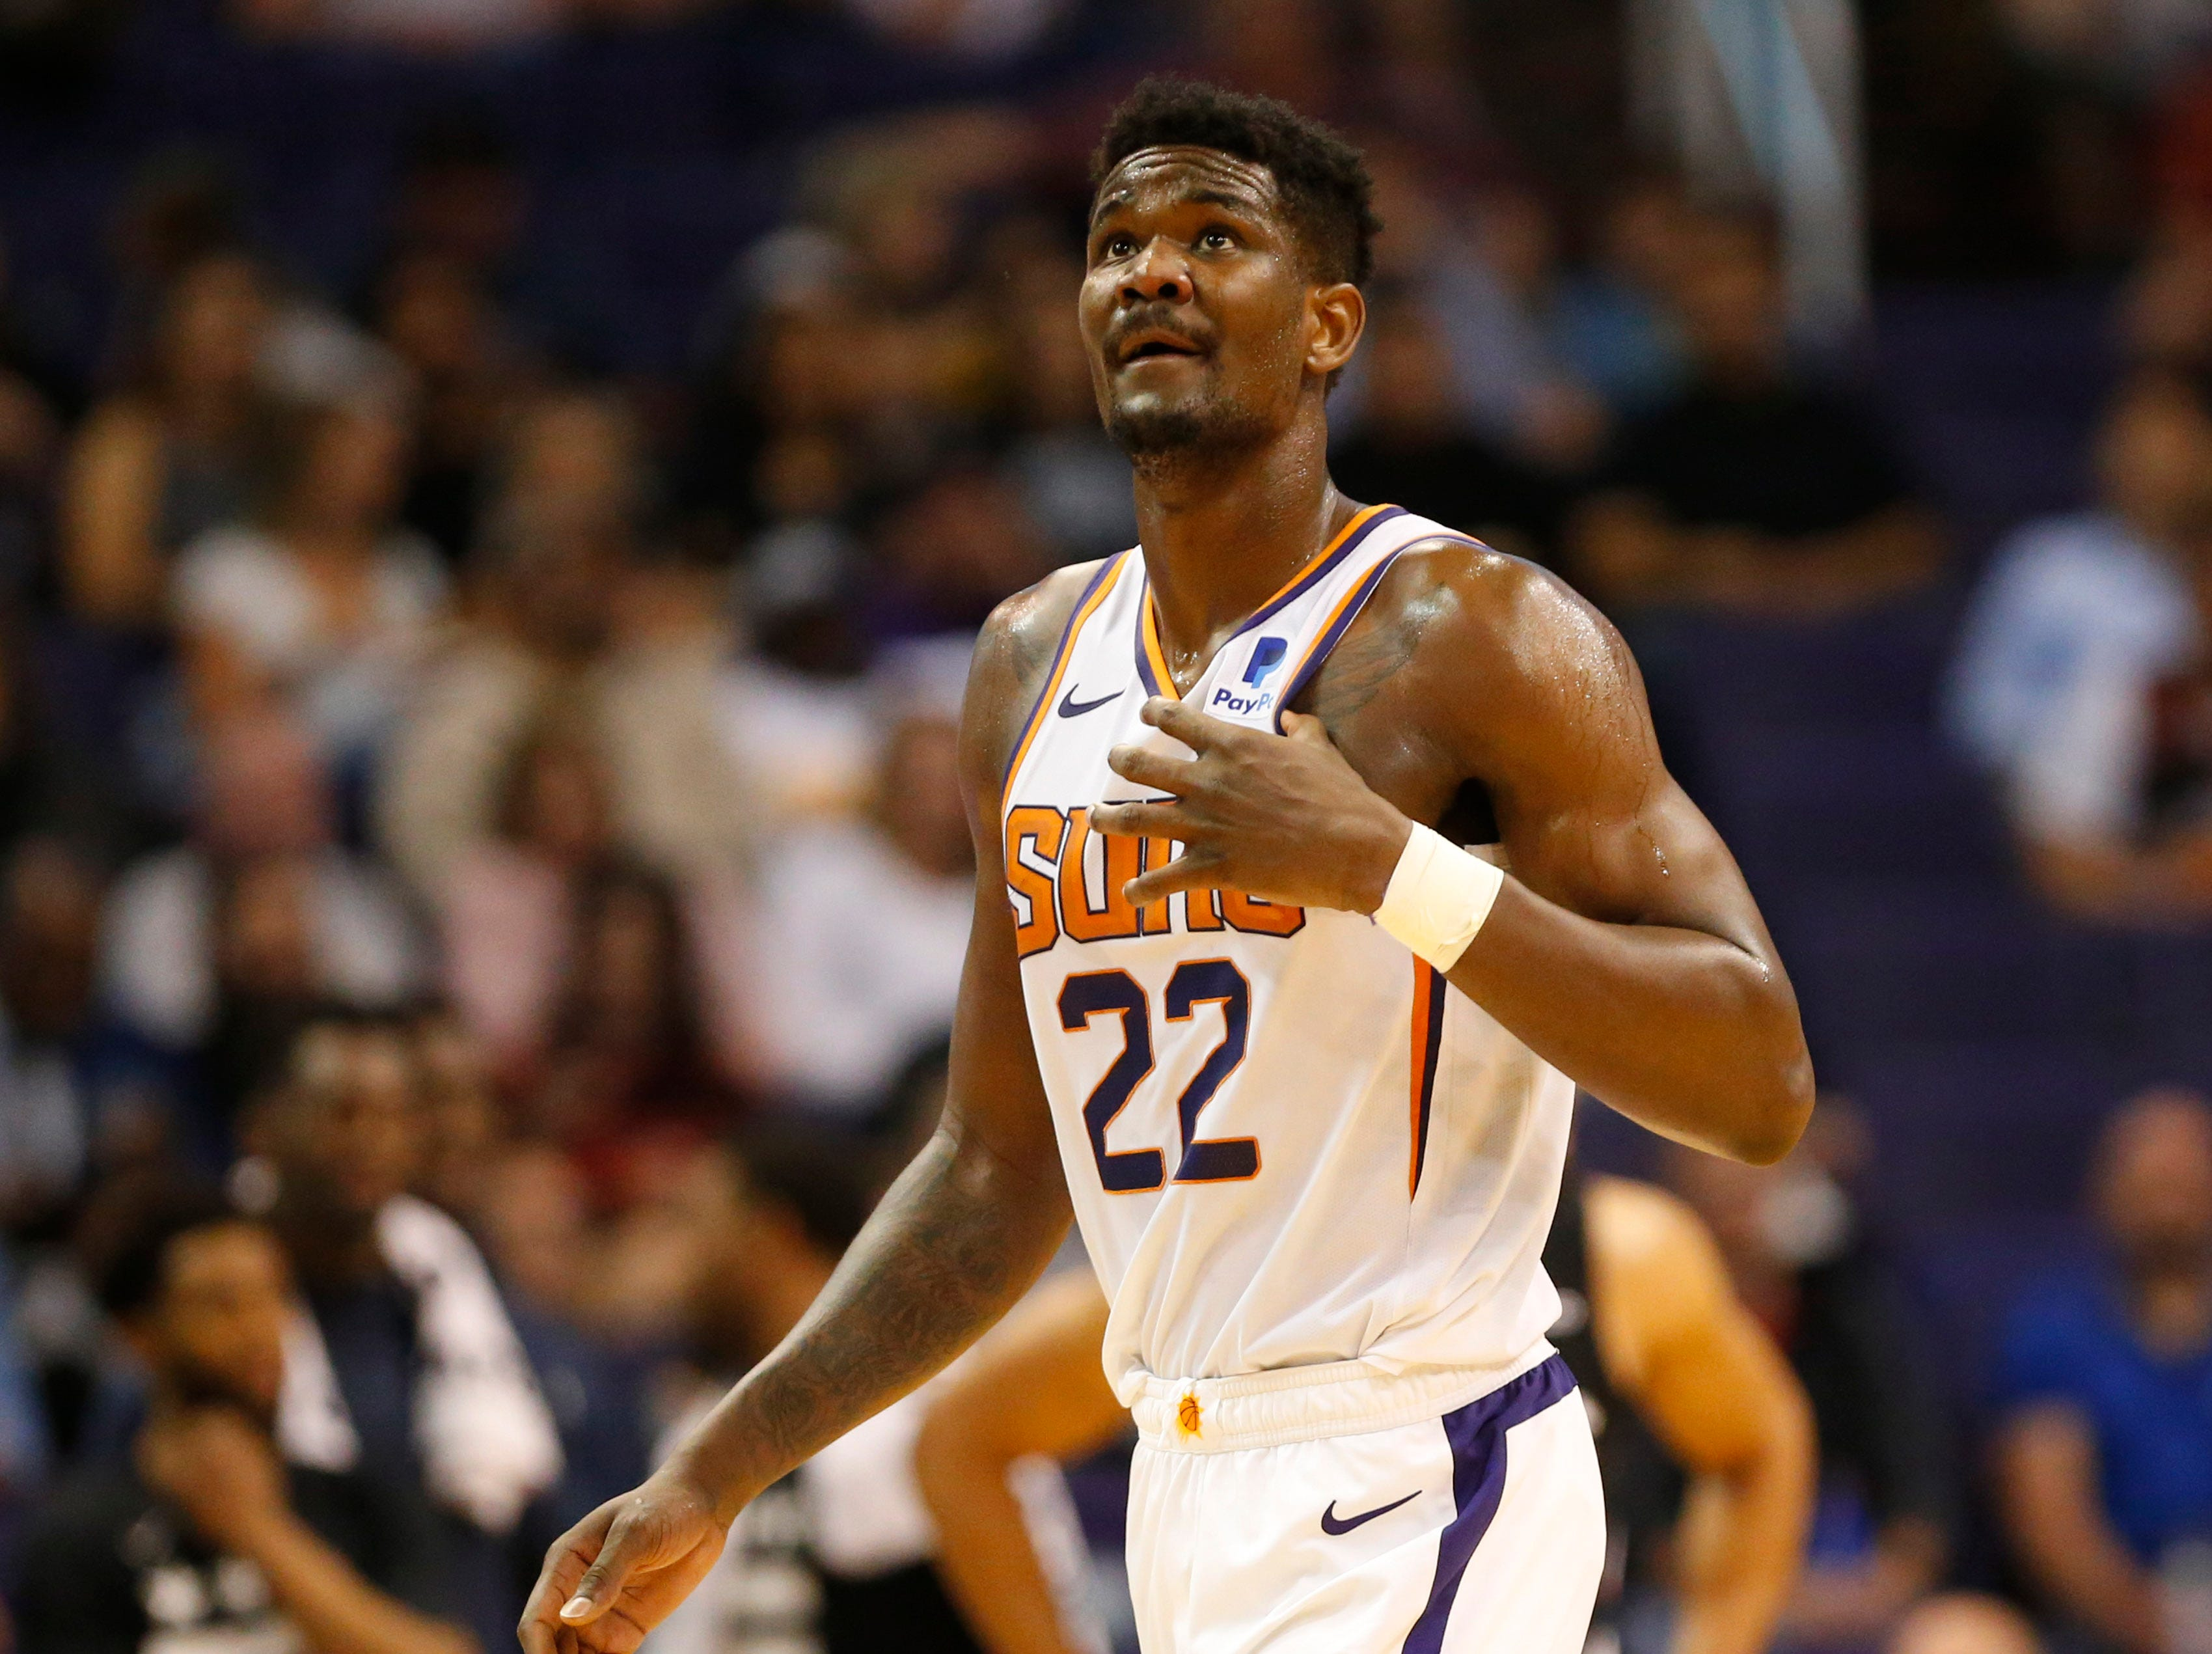 Phoenix Suns center Deandre Ayton (22) looks towards the scoreboard during the second quarter against the Washington Wizards in Phoenix March 27, 2019.